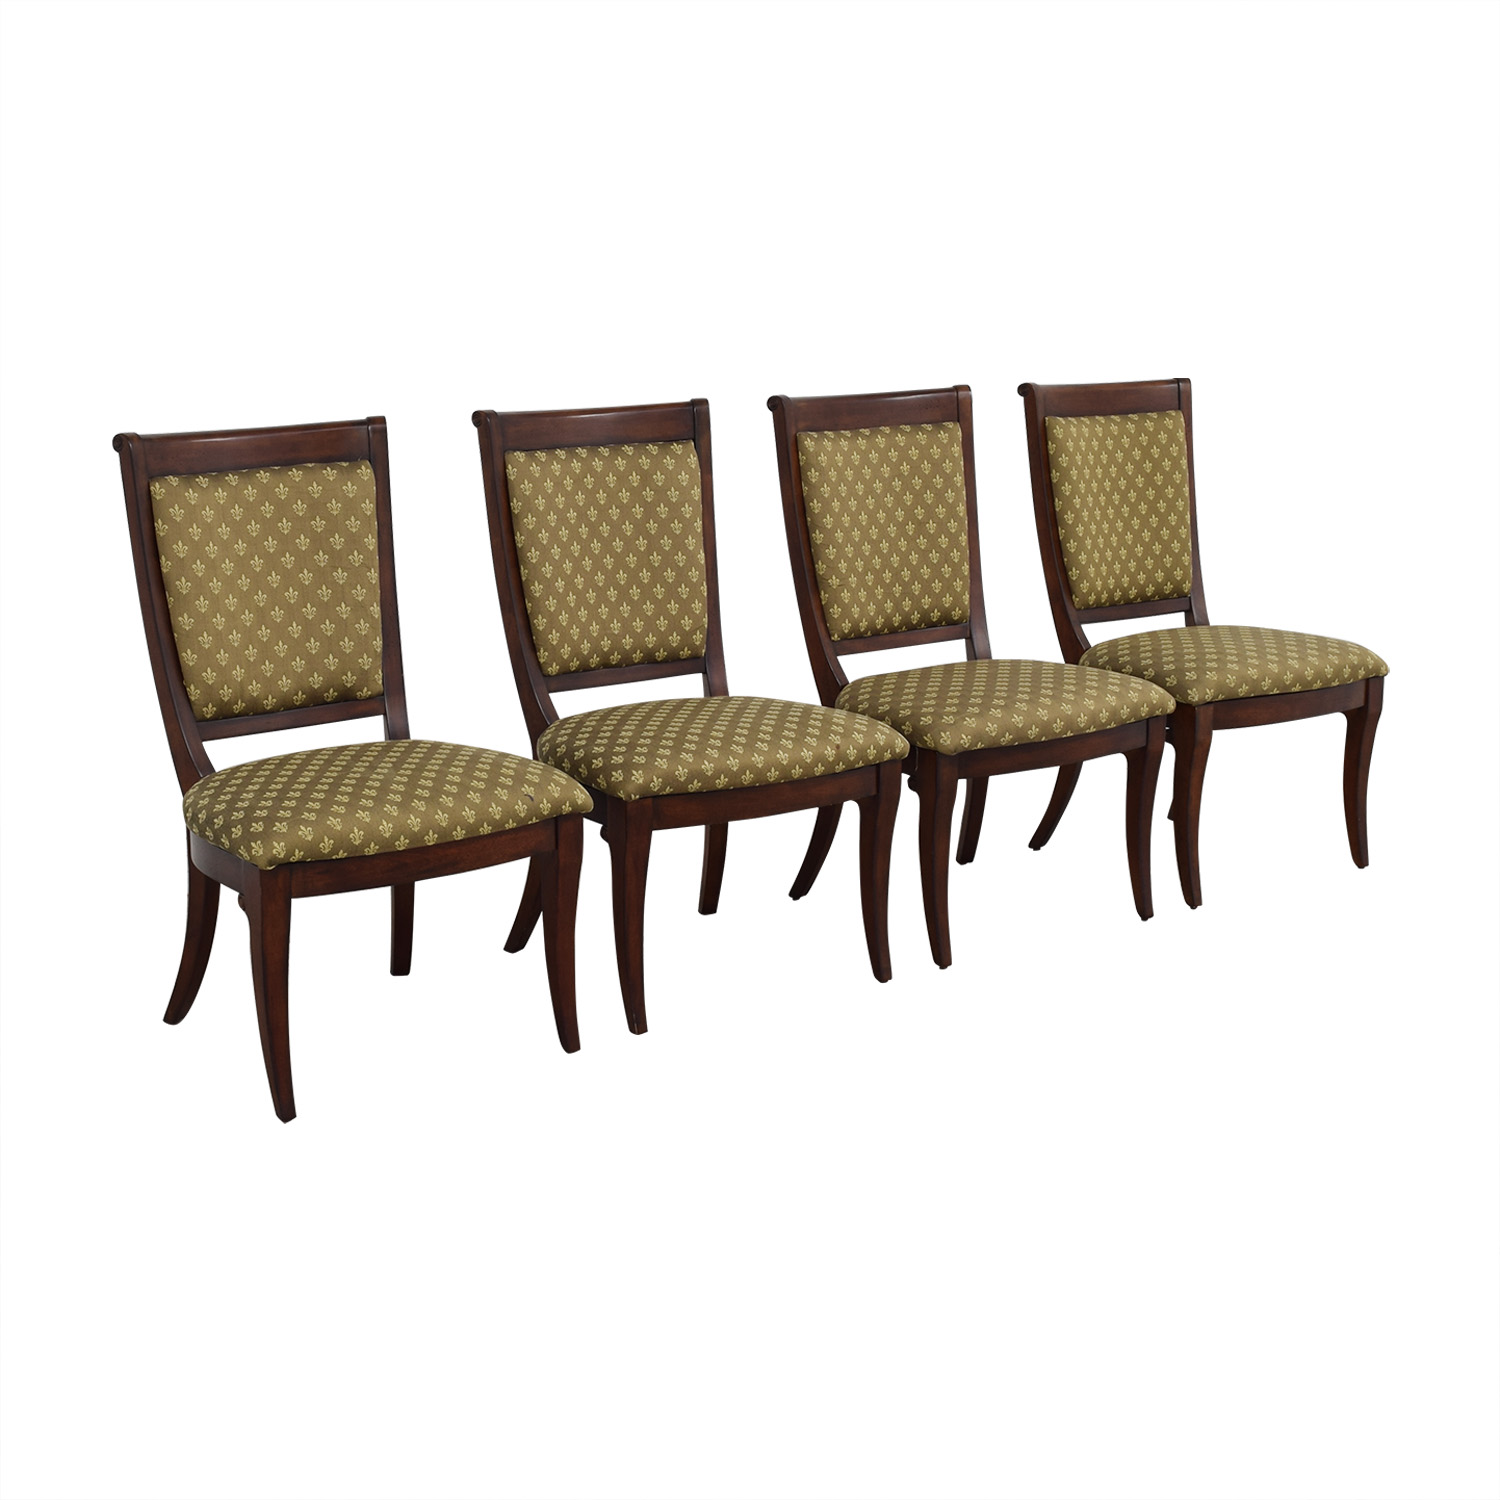 Bassett Furniture Bassett Furniture Upholstered Side Chairs brown